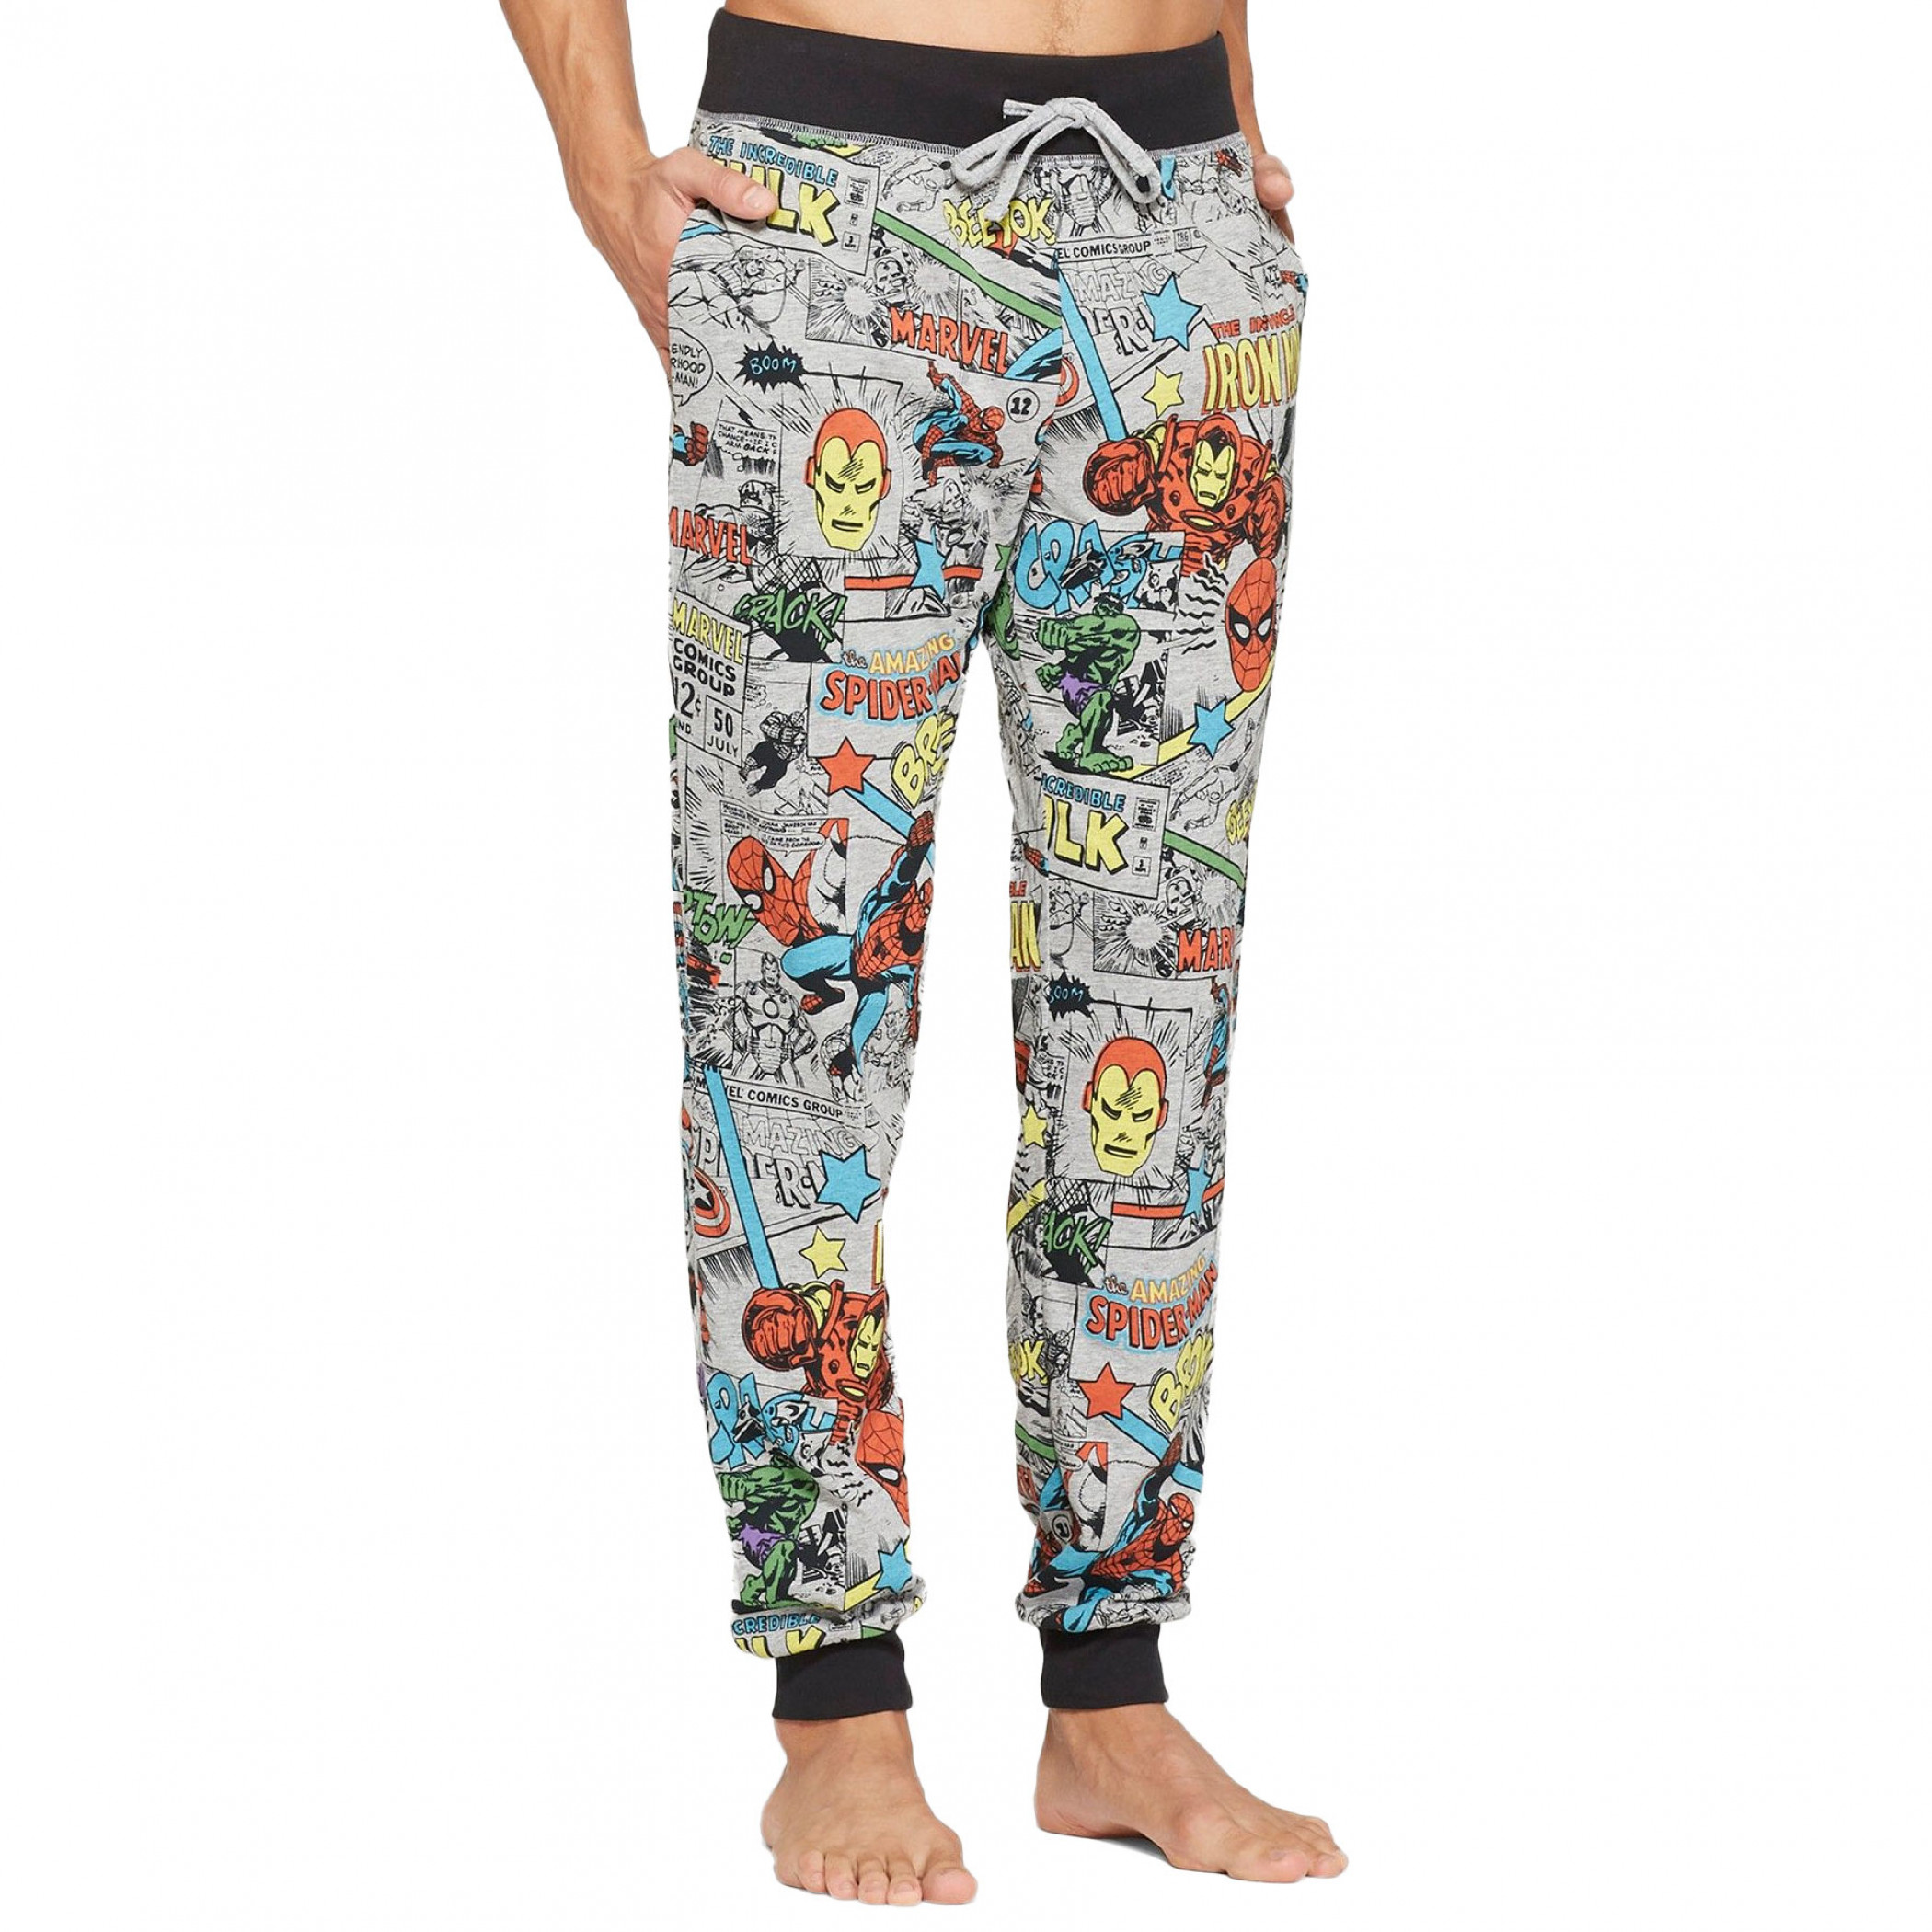 Avengers Classic Characters All Over Print Jogger Style Pants